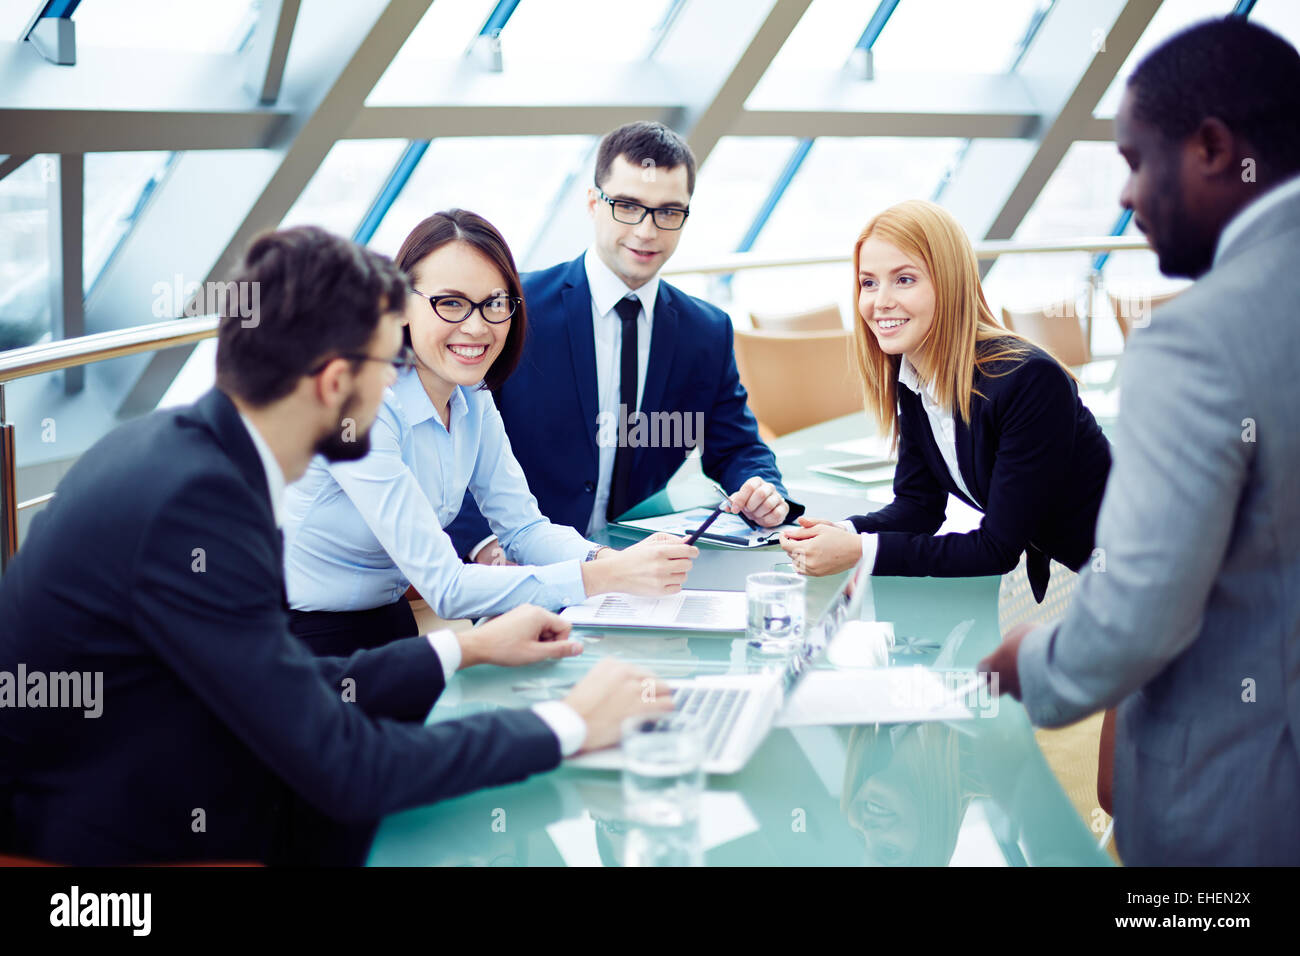 Group of business people planning together - Stock Image